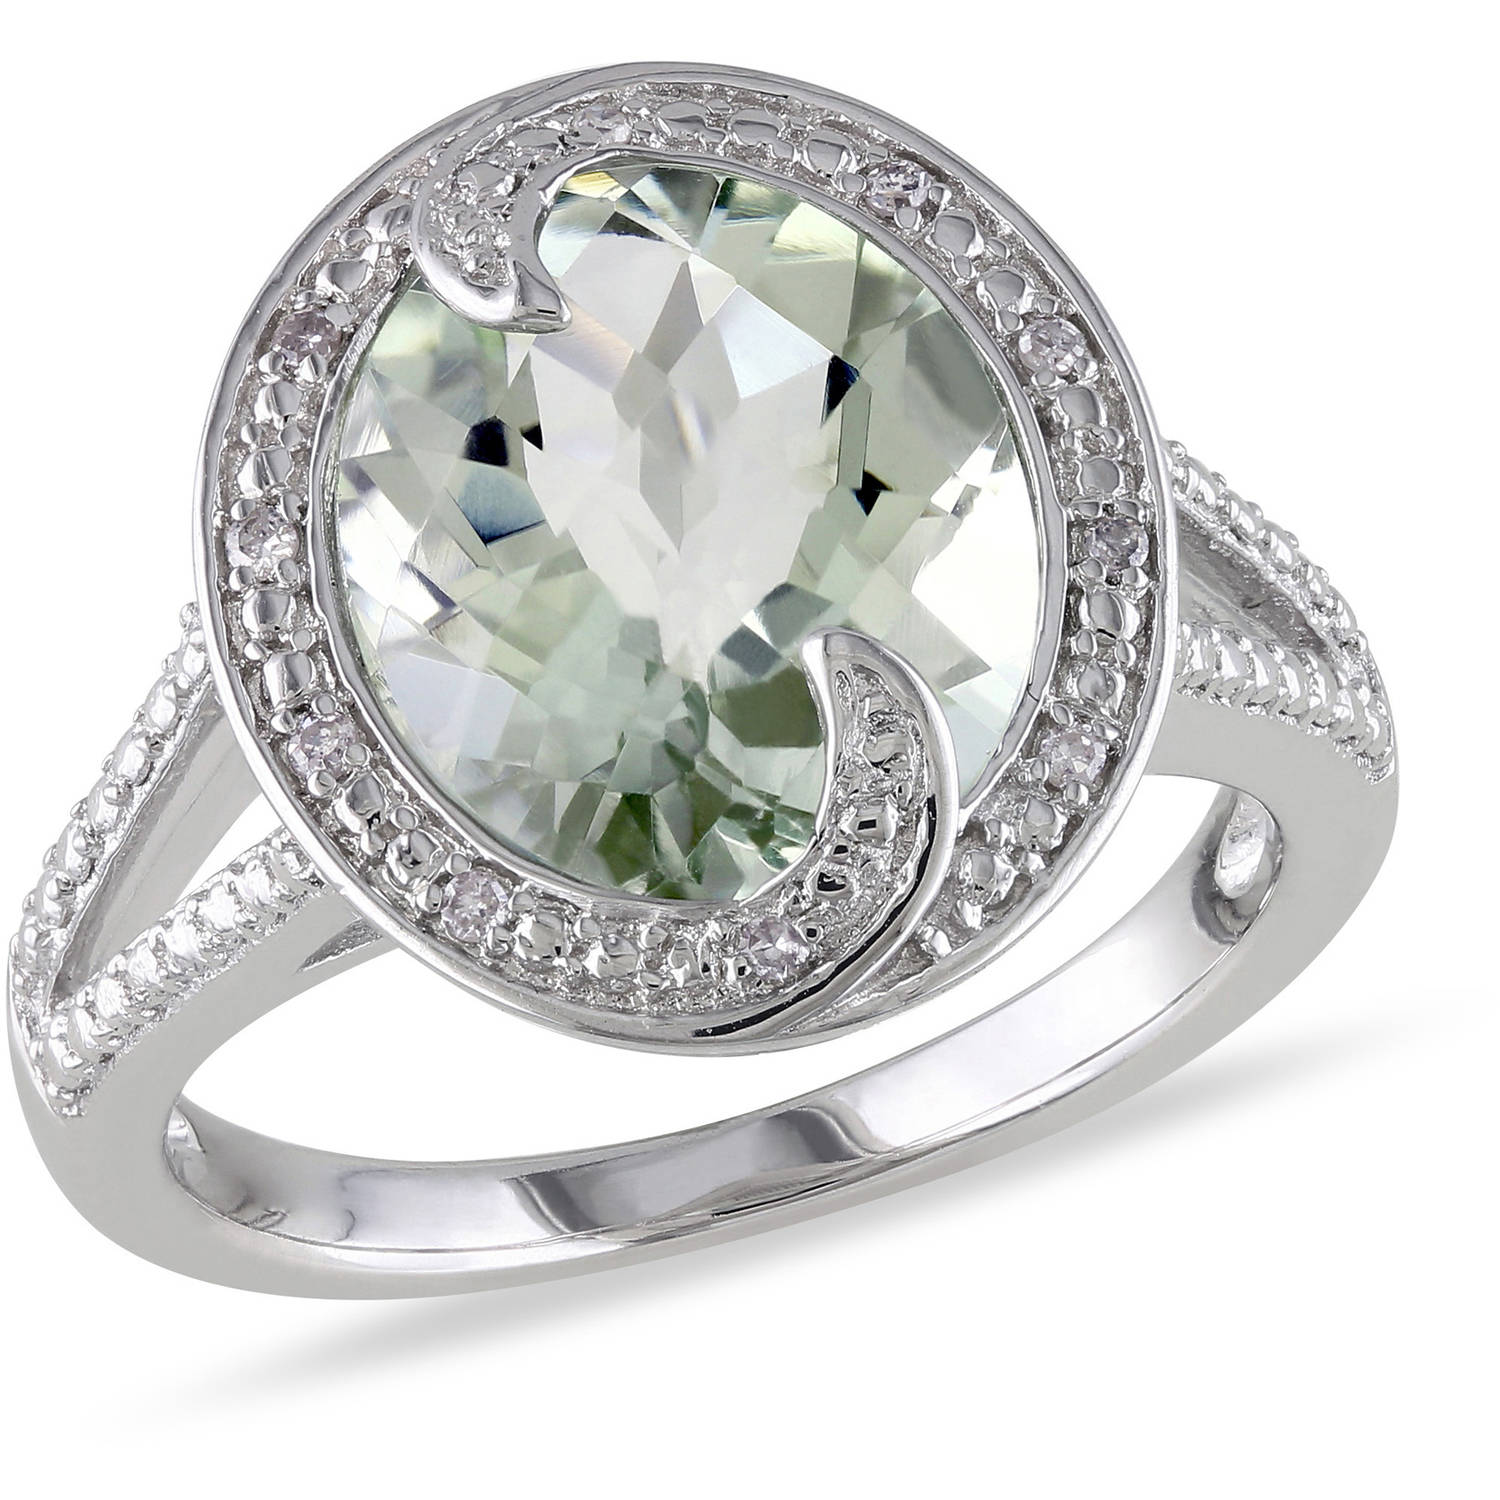 Tangelo 4 Carat T.G.W. Green Amethyst and Diamond-Accent Sterling Silver Cocktail Ring